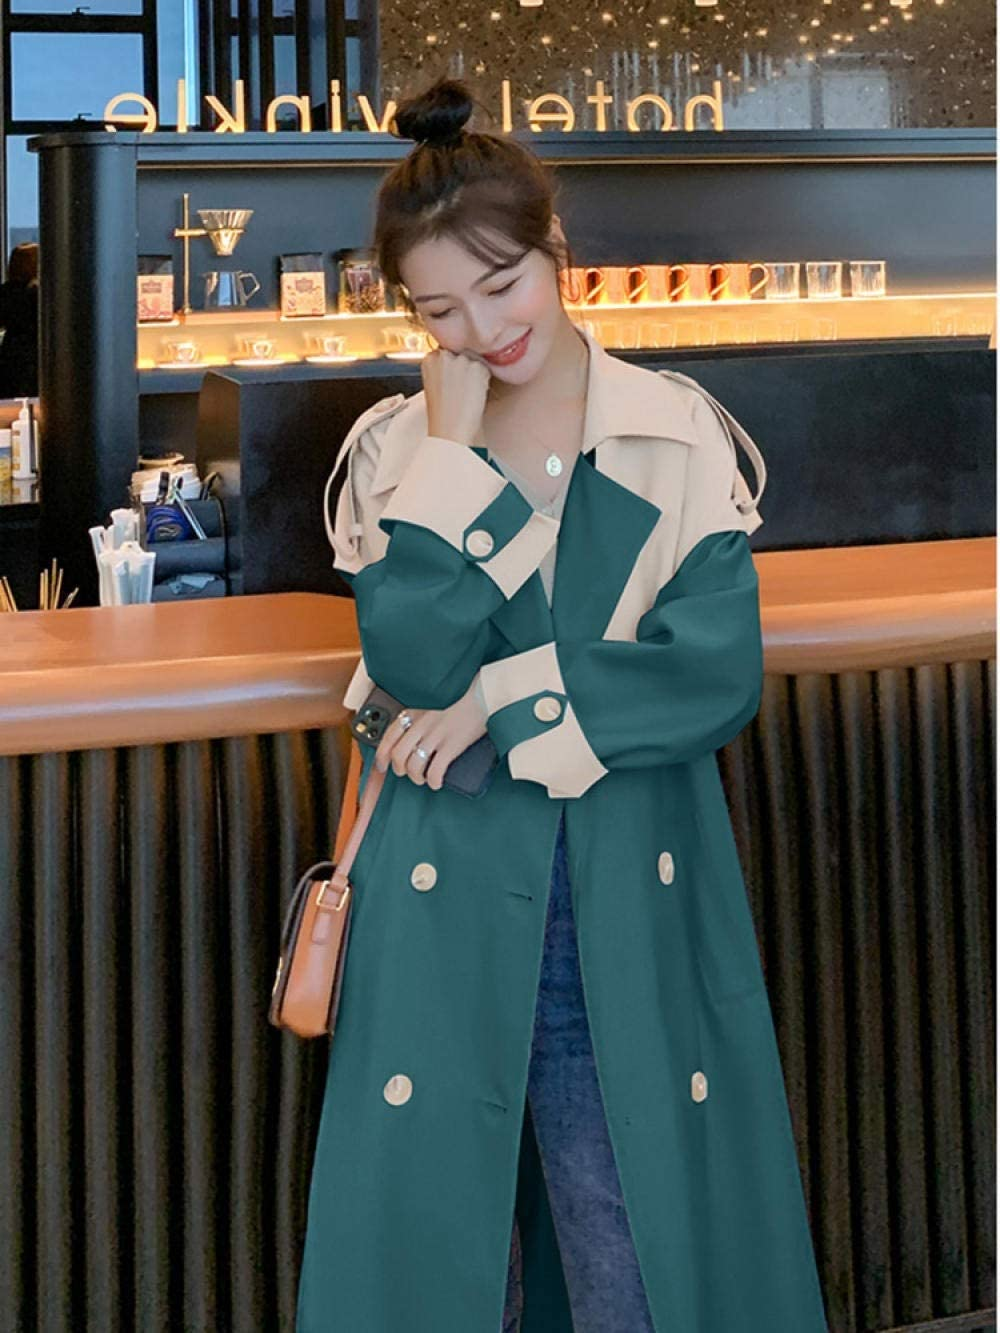 GZSZYA Women's Trench Coats Women's Long Trench Coat Loose and Chic Patchwork Over The Knee Street Trench Coat for Women (Color : Green, Size : XL)